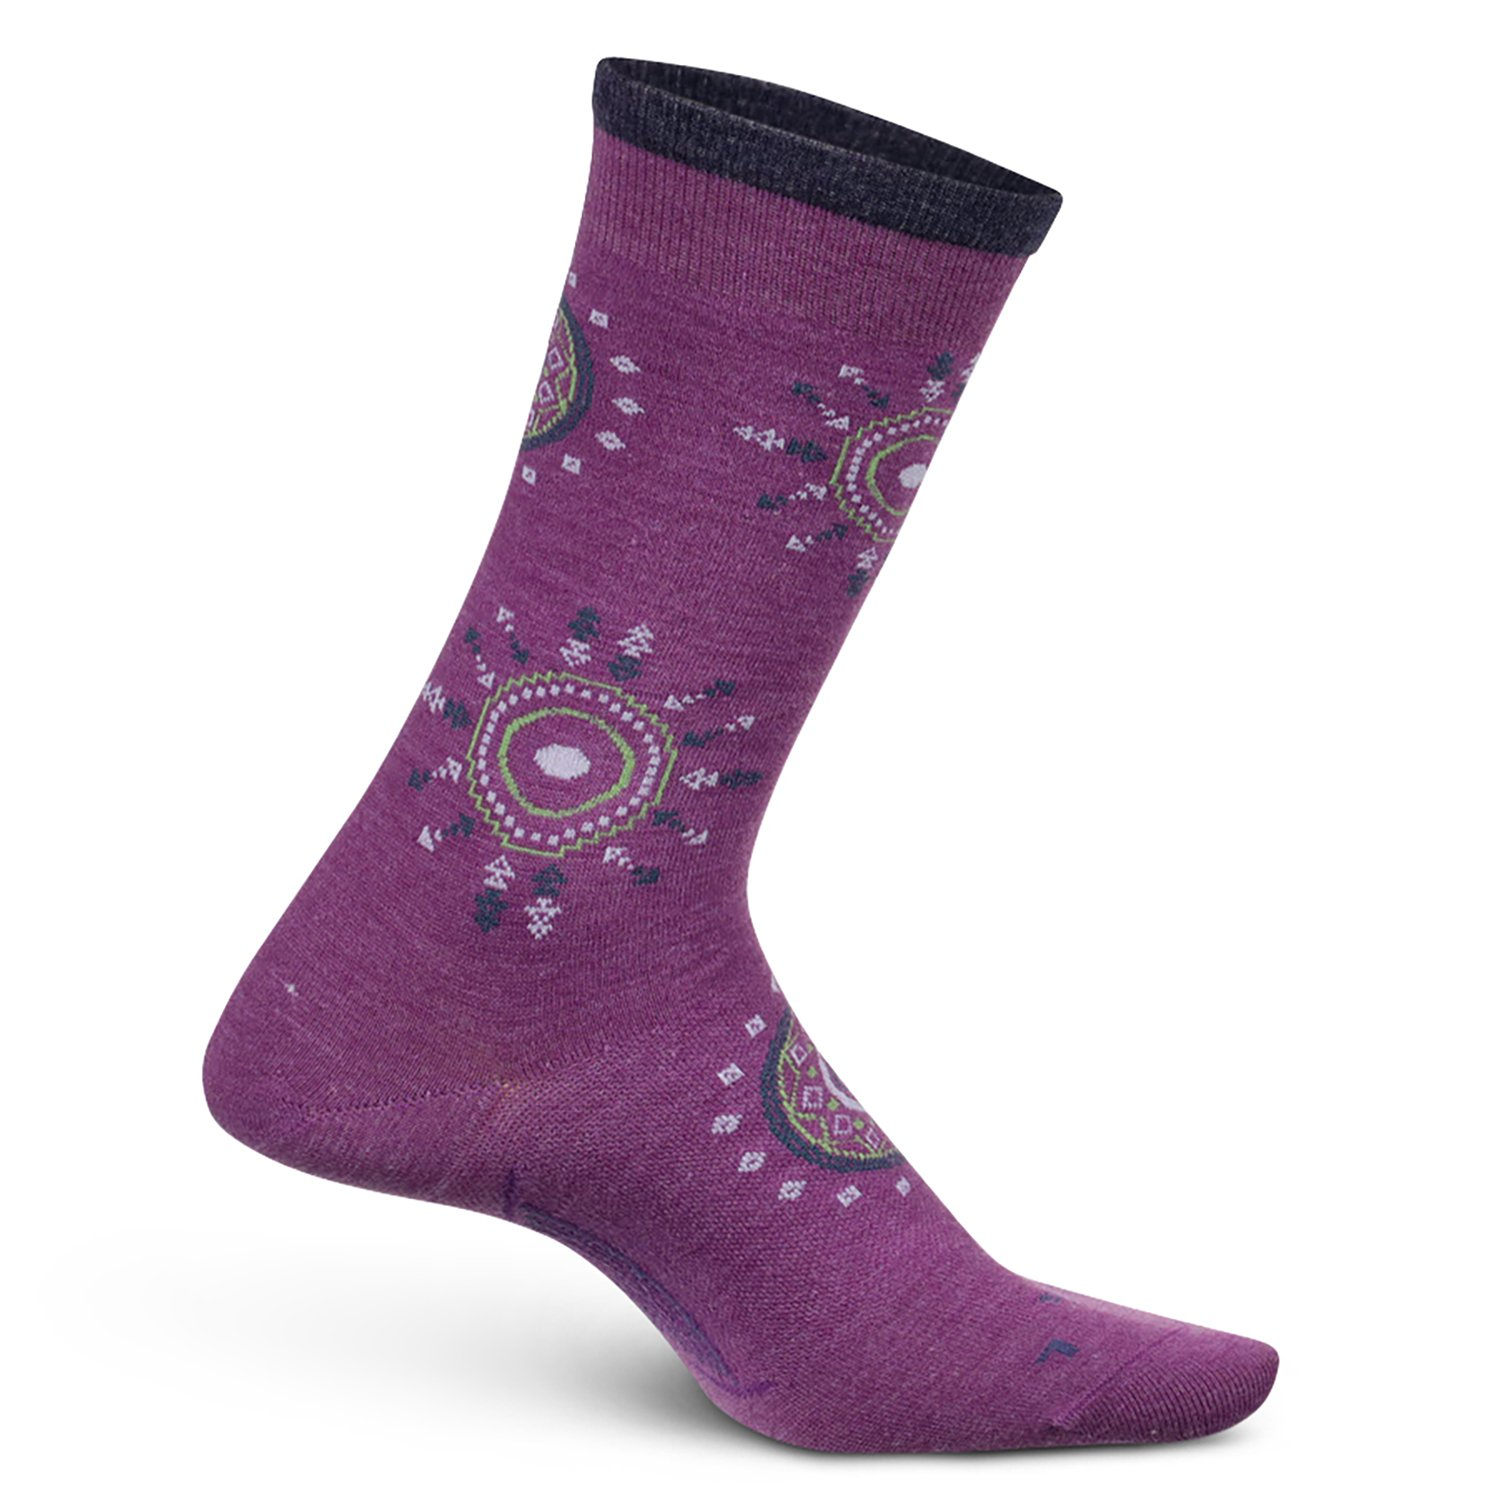 Feetures Women's Everyday Performance Dress Sock - Sunburst Ultra Light Crew - Berry - Size Large